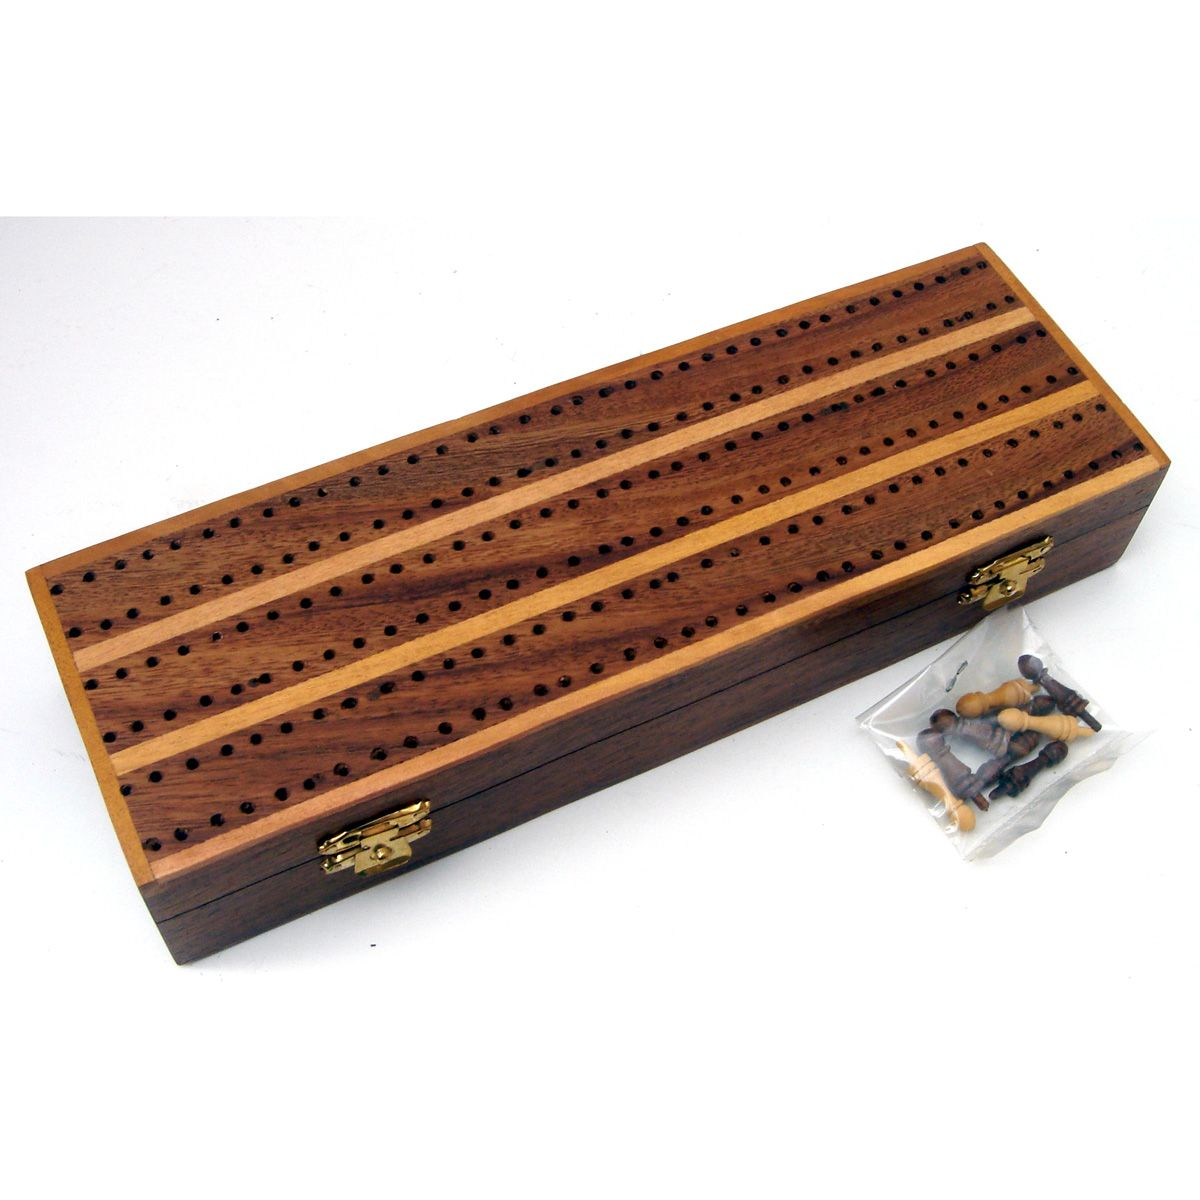 Antique Wood Cribbage Card Game Board